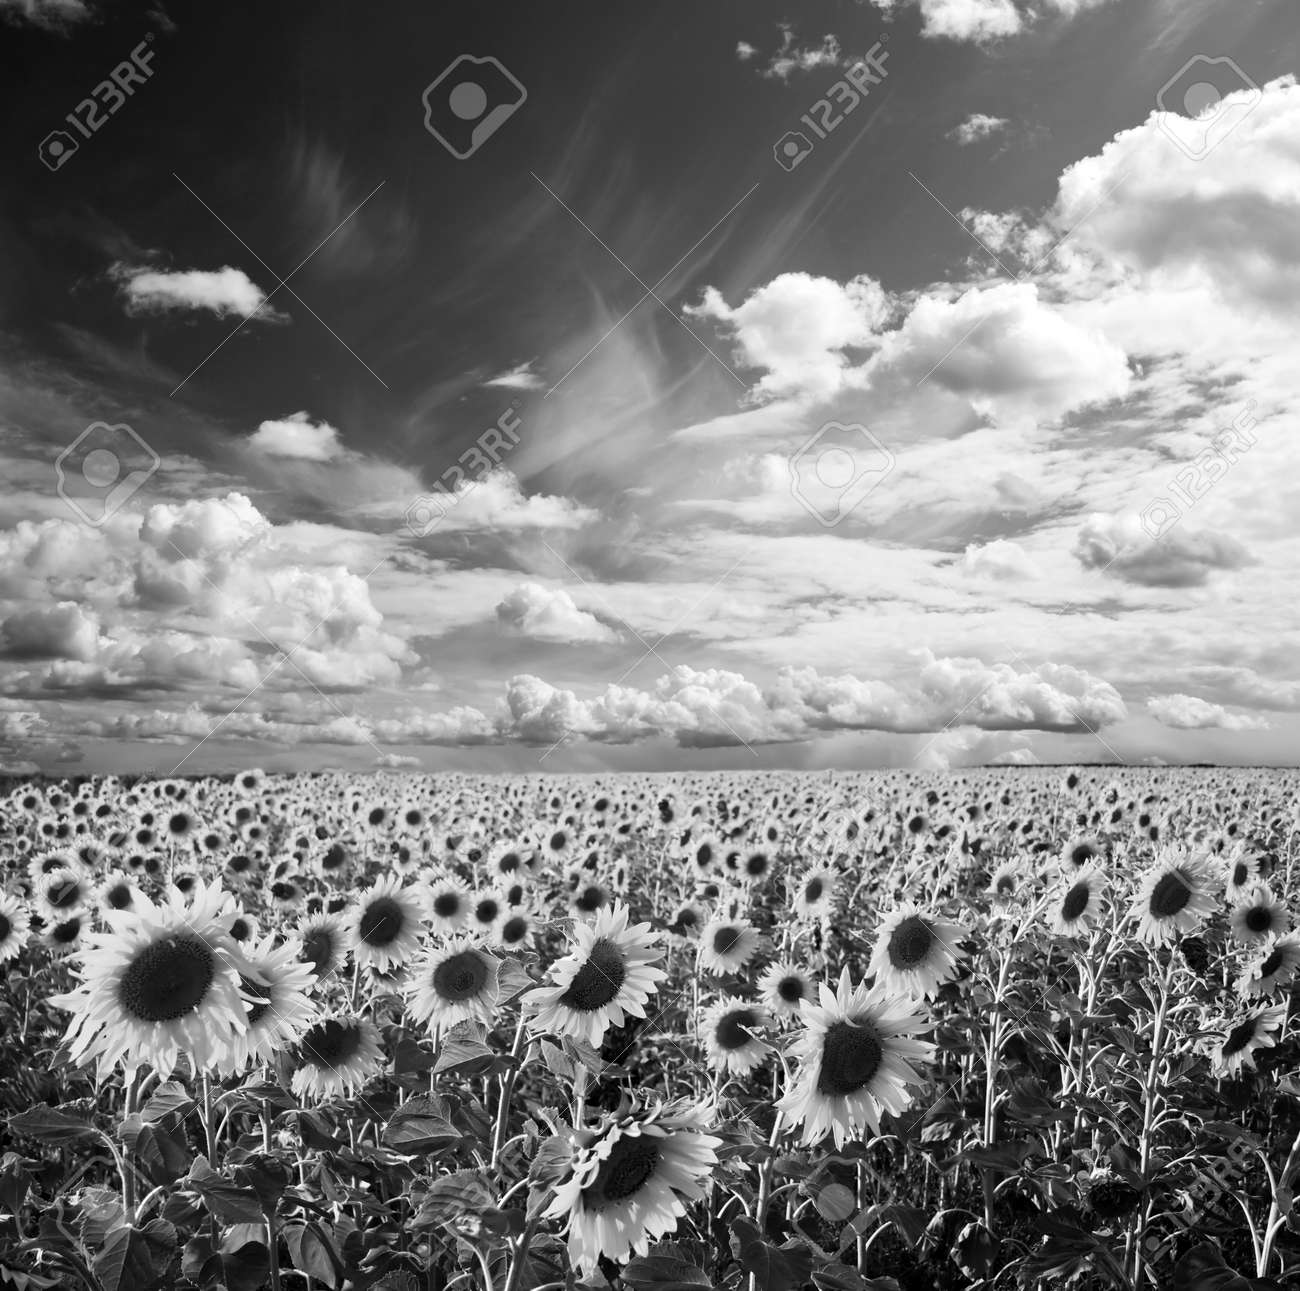 Field Of The Yellow Sunflowers Black And White Shot Stock Photo